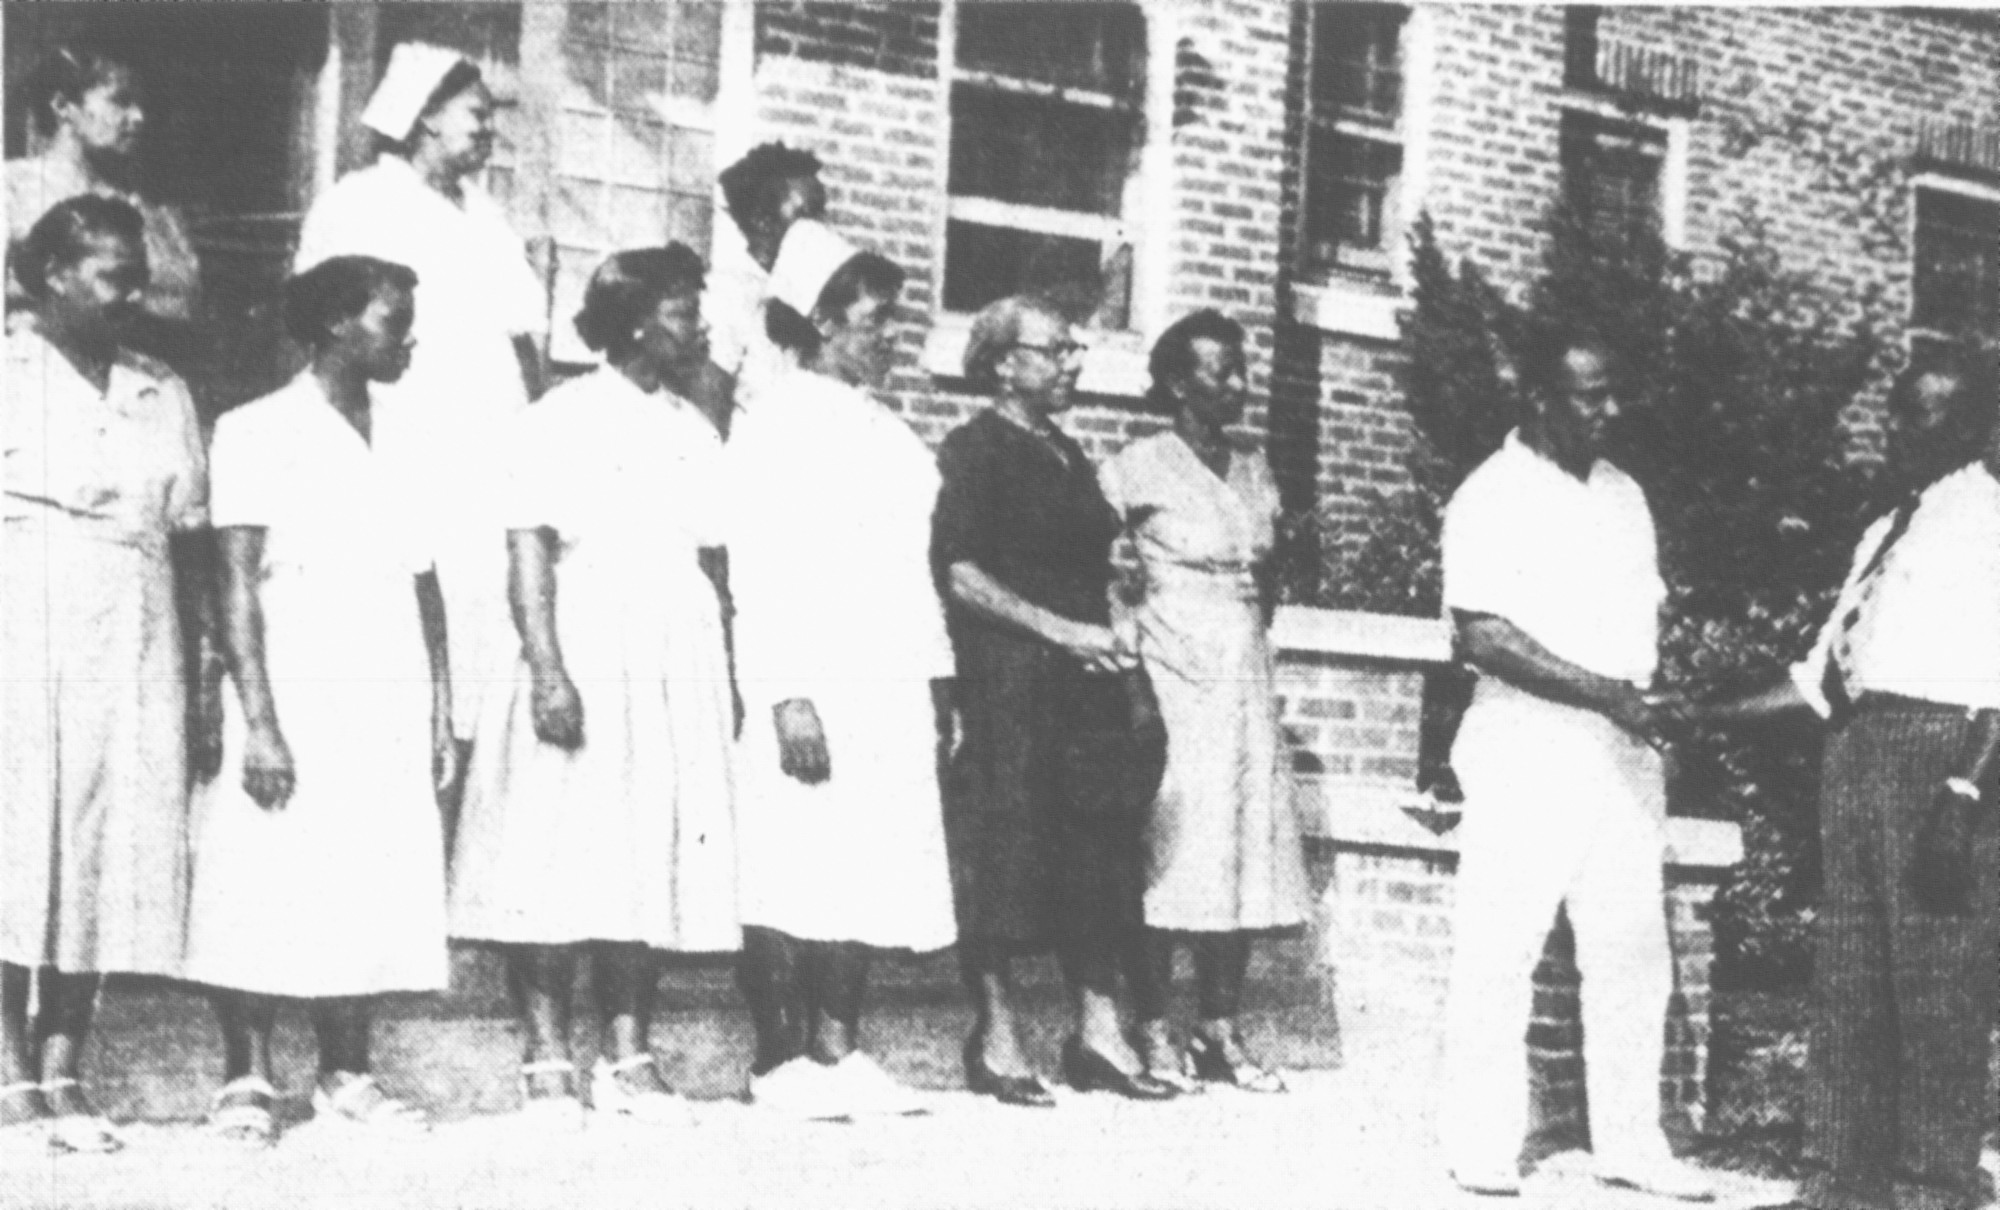 Rev. H.B. Brown, far right, welcomes Dr. William L. Johnson to the staff of Sumter Community Hospital. Dr. Johnson came to Sumter from the Norfolk, Virginia, Community Hospital. Other staff members pictured are: front row, from left, Margurite B. Mickens, Trula Mae Rufus, Maggie Beard, Catherine Johnson, Maggie Stokes and Hattie Richardson; back row, Rhoda McDowell, Clara Clowney and Edna Jeter. Not pictured: Ethel Buckley, surgical nurse in charge of the operating room.